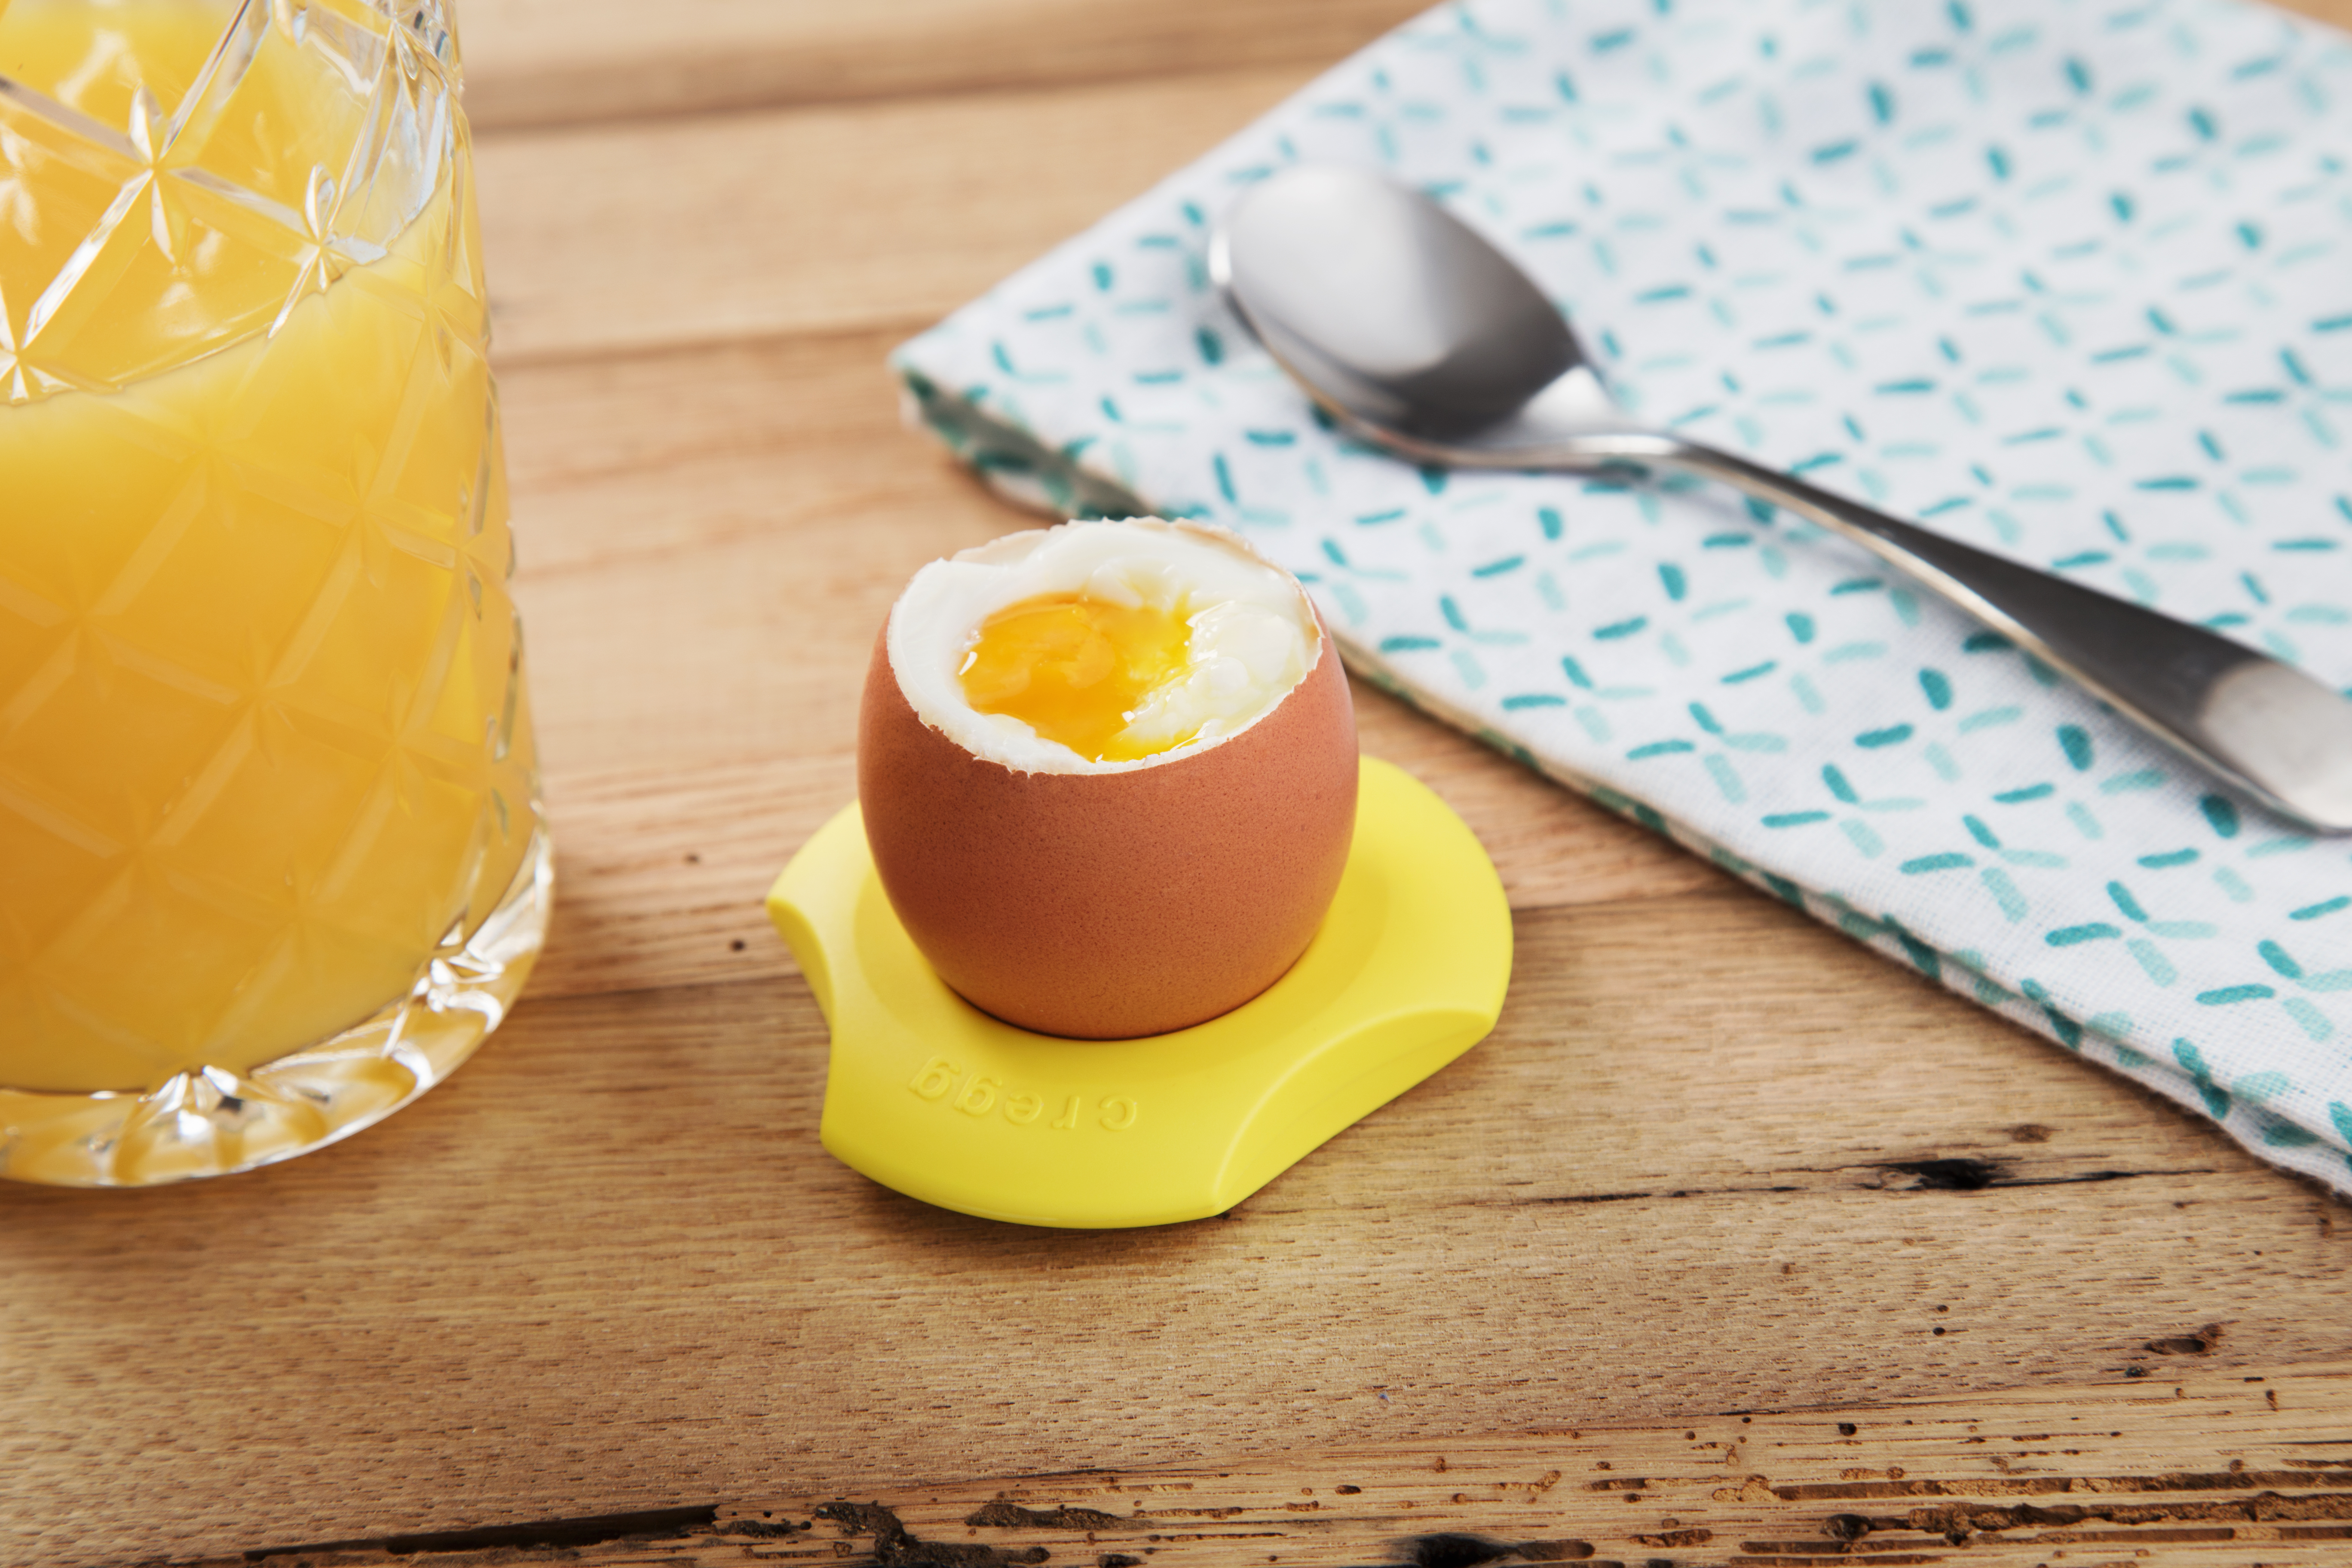 A soft boiled egg sits in a yellow Cregg egg cutter ring